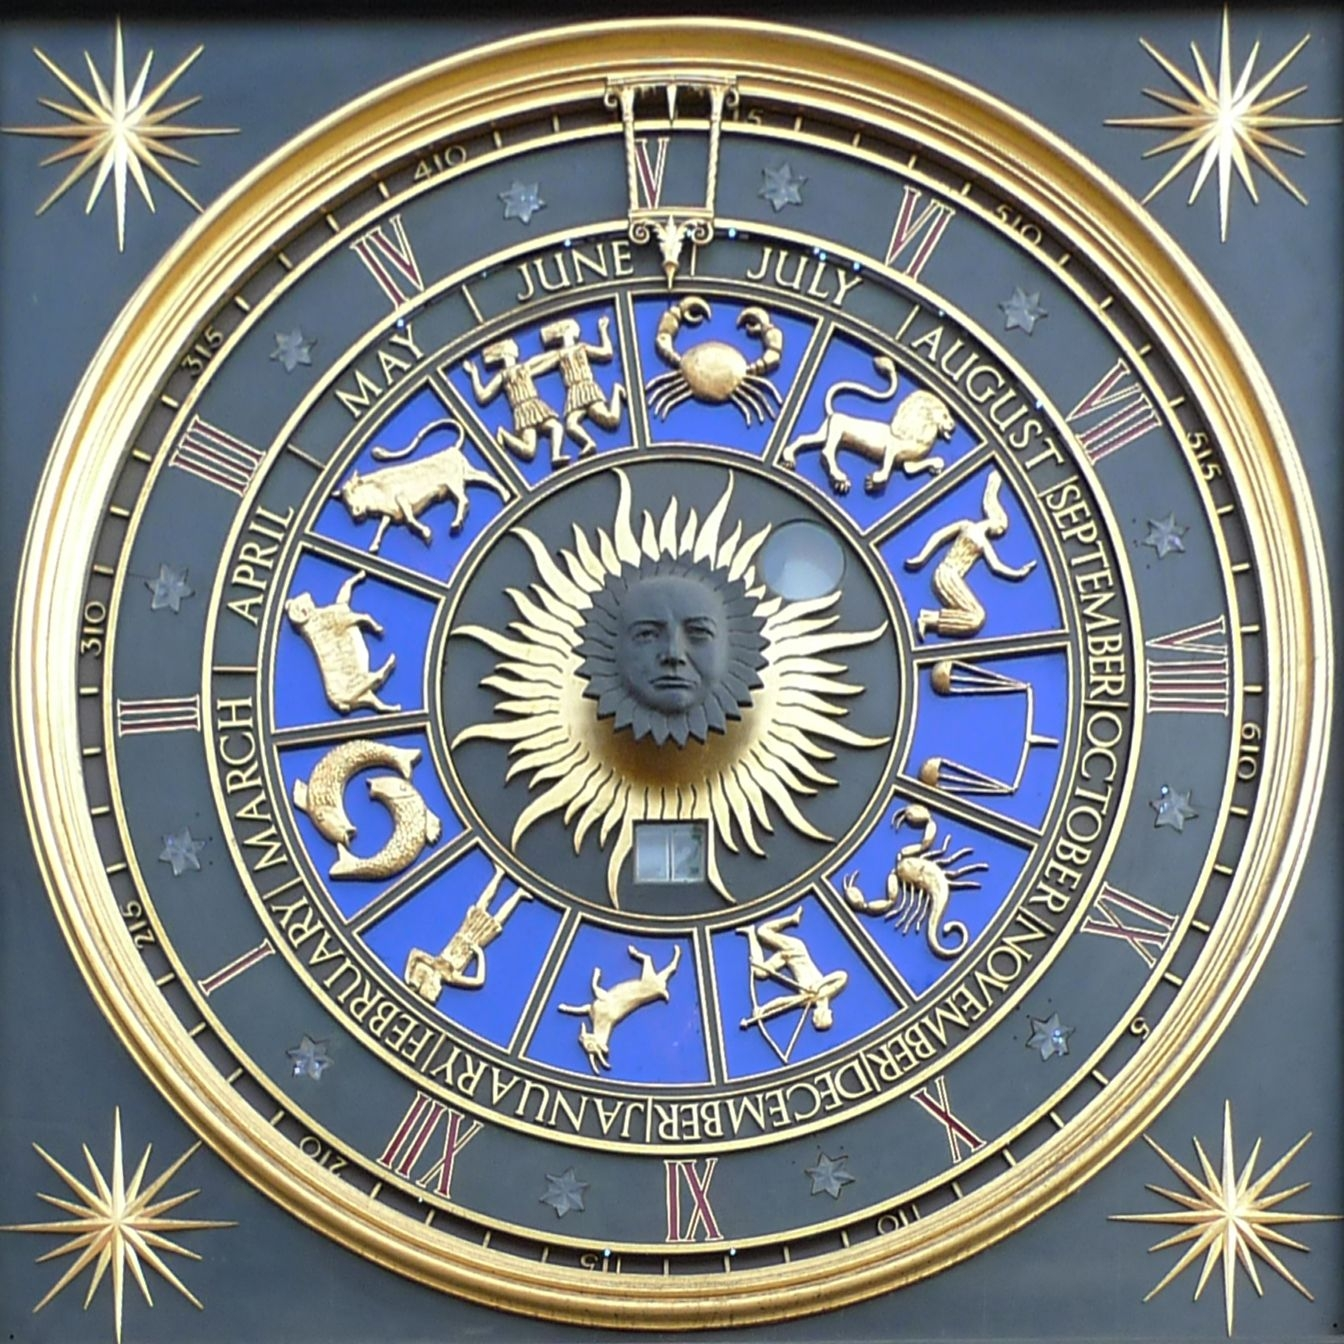 did you know each zodiac sign has its own birthstone